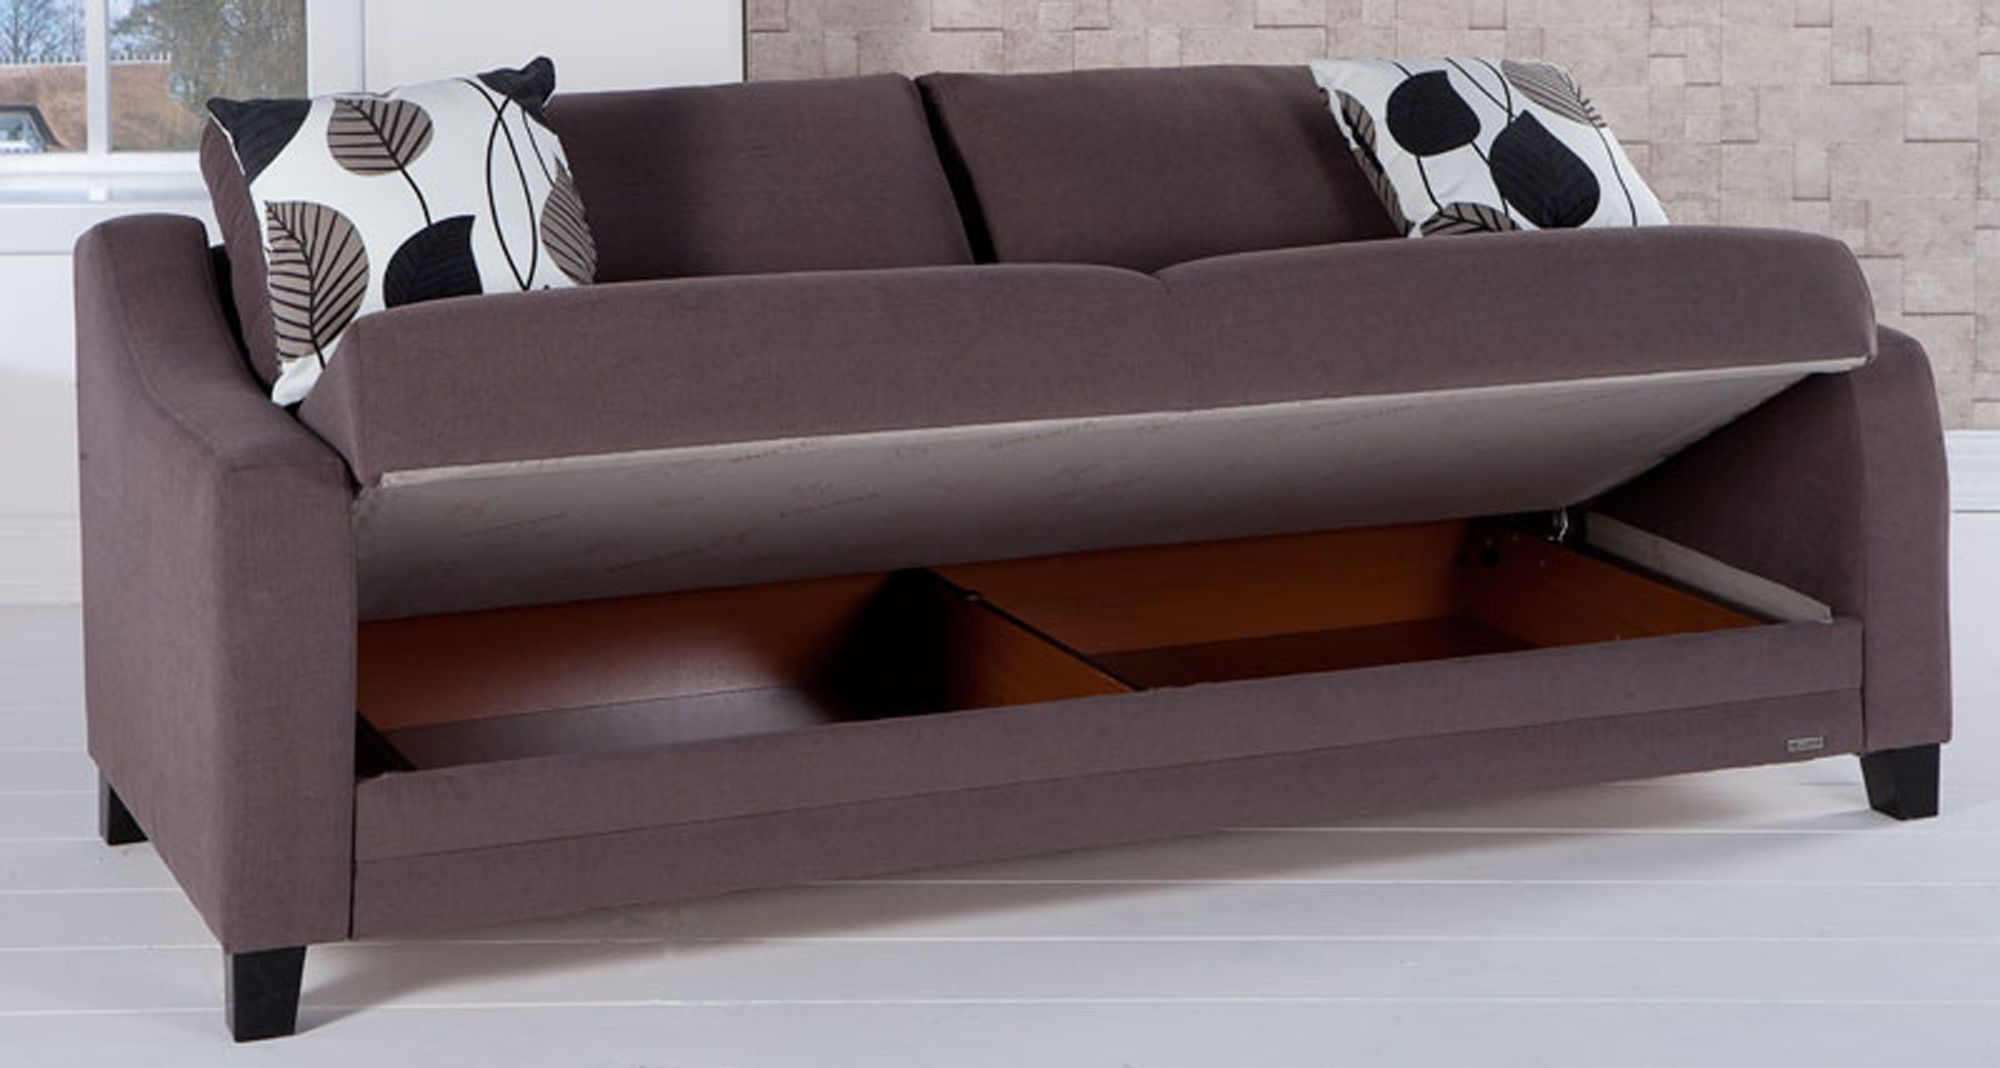 Love Seat With Storage And Folds Down Like A Futon It Denver Sofa Bed Istikbal Furniture